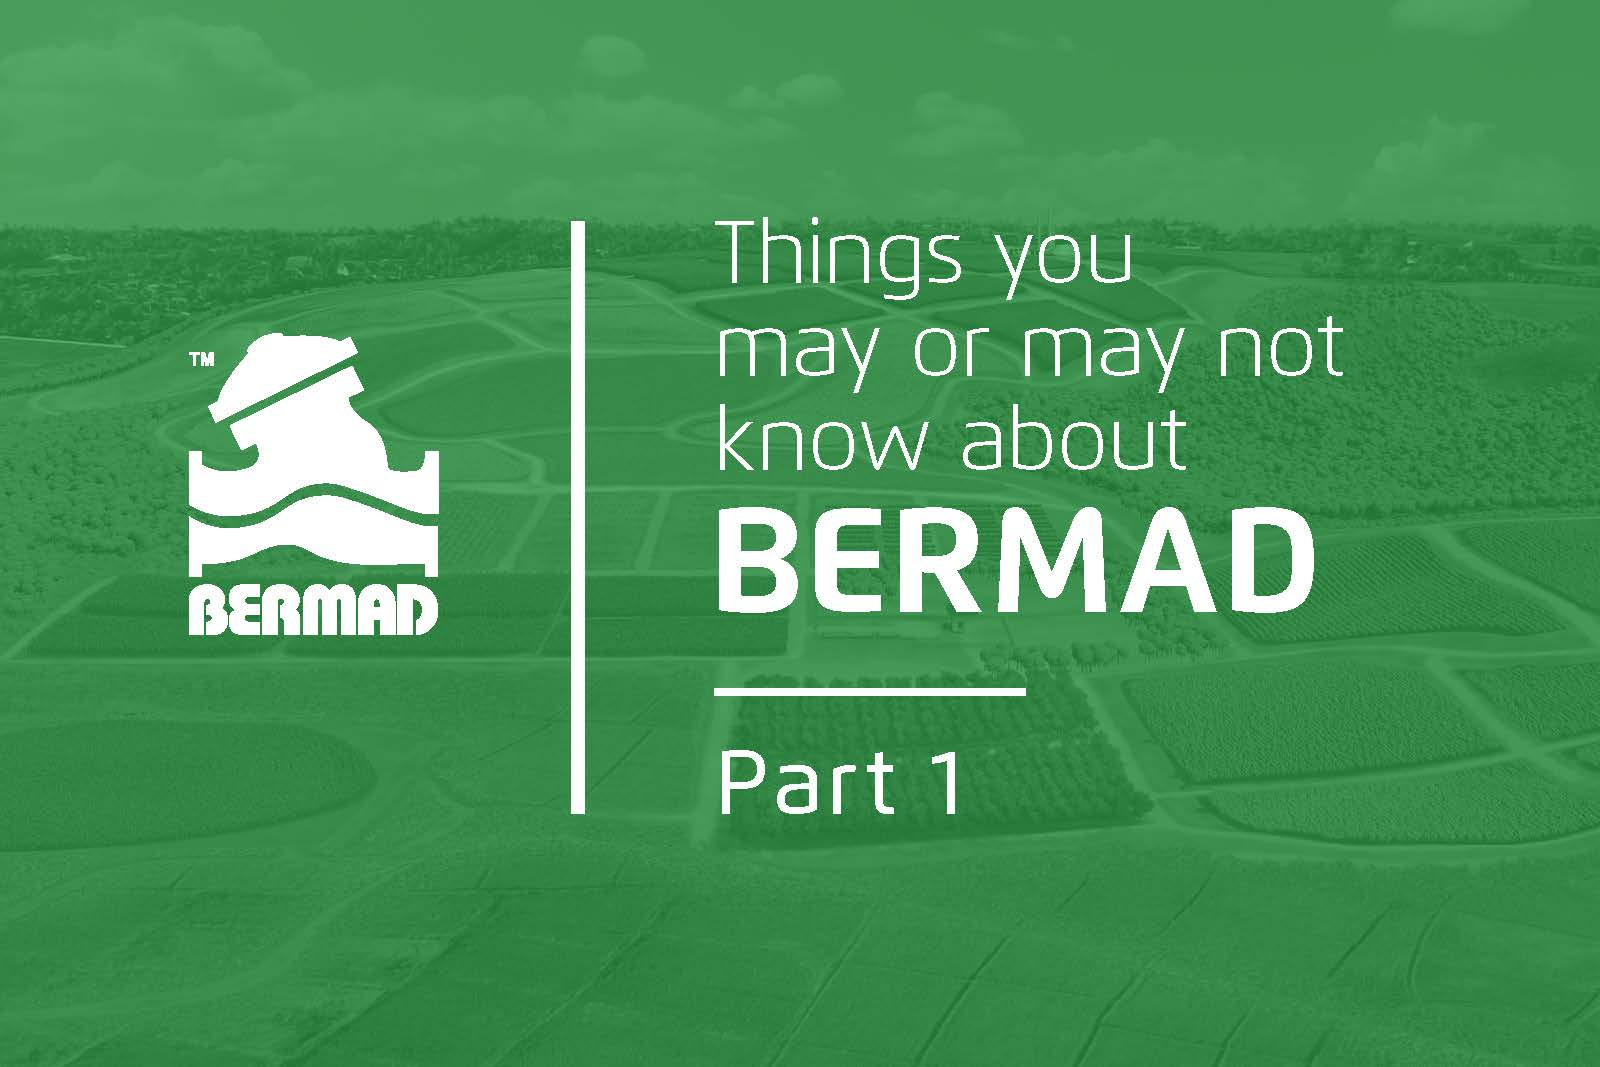 point_about BERMAD_v14_part1_Page_1.jpg